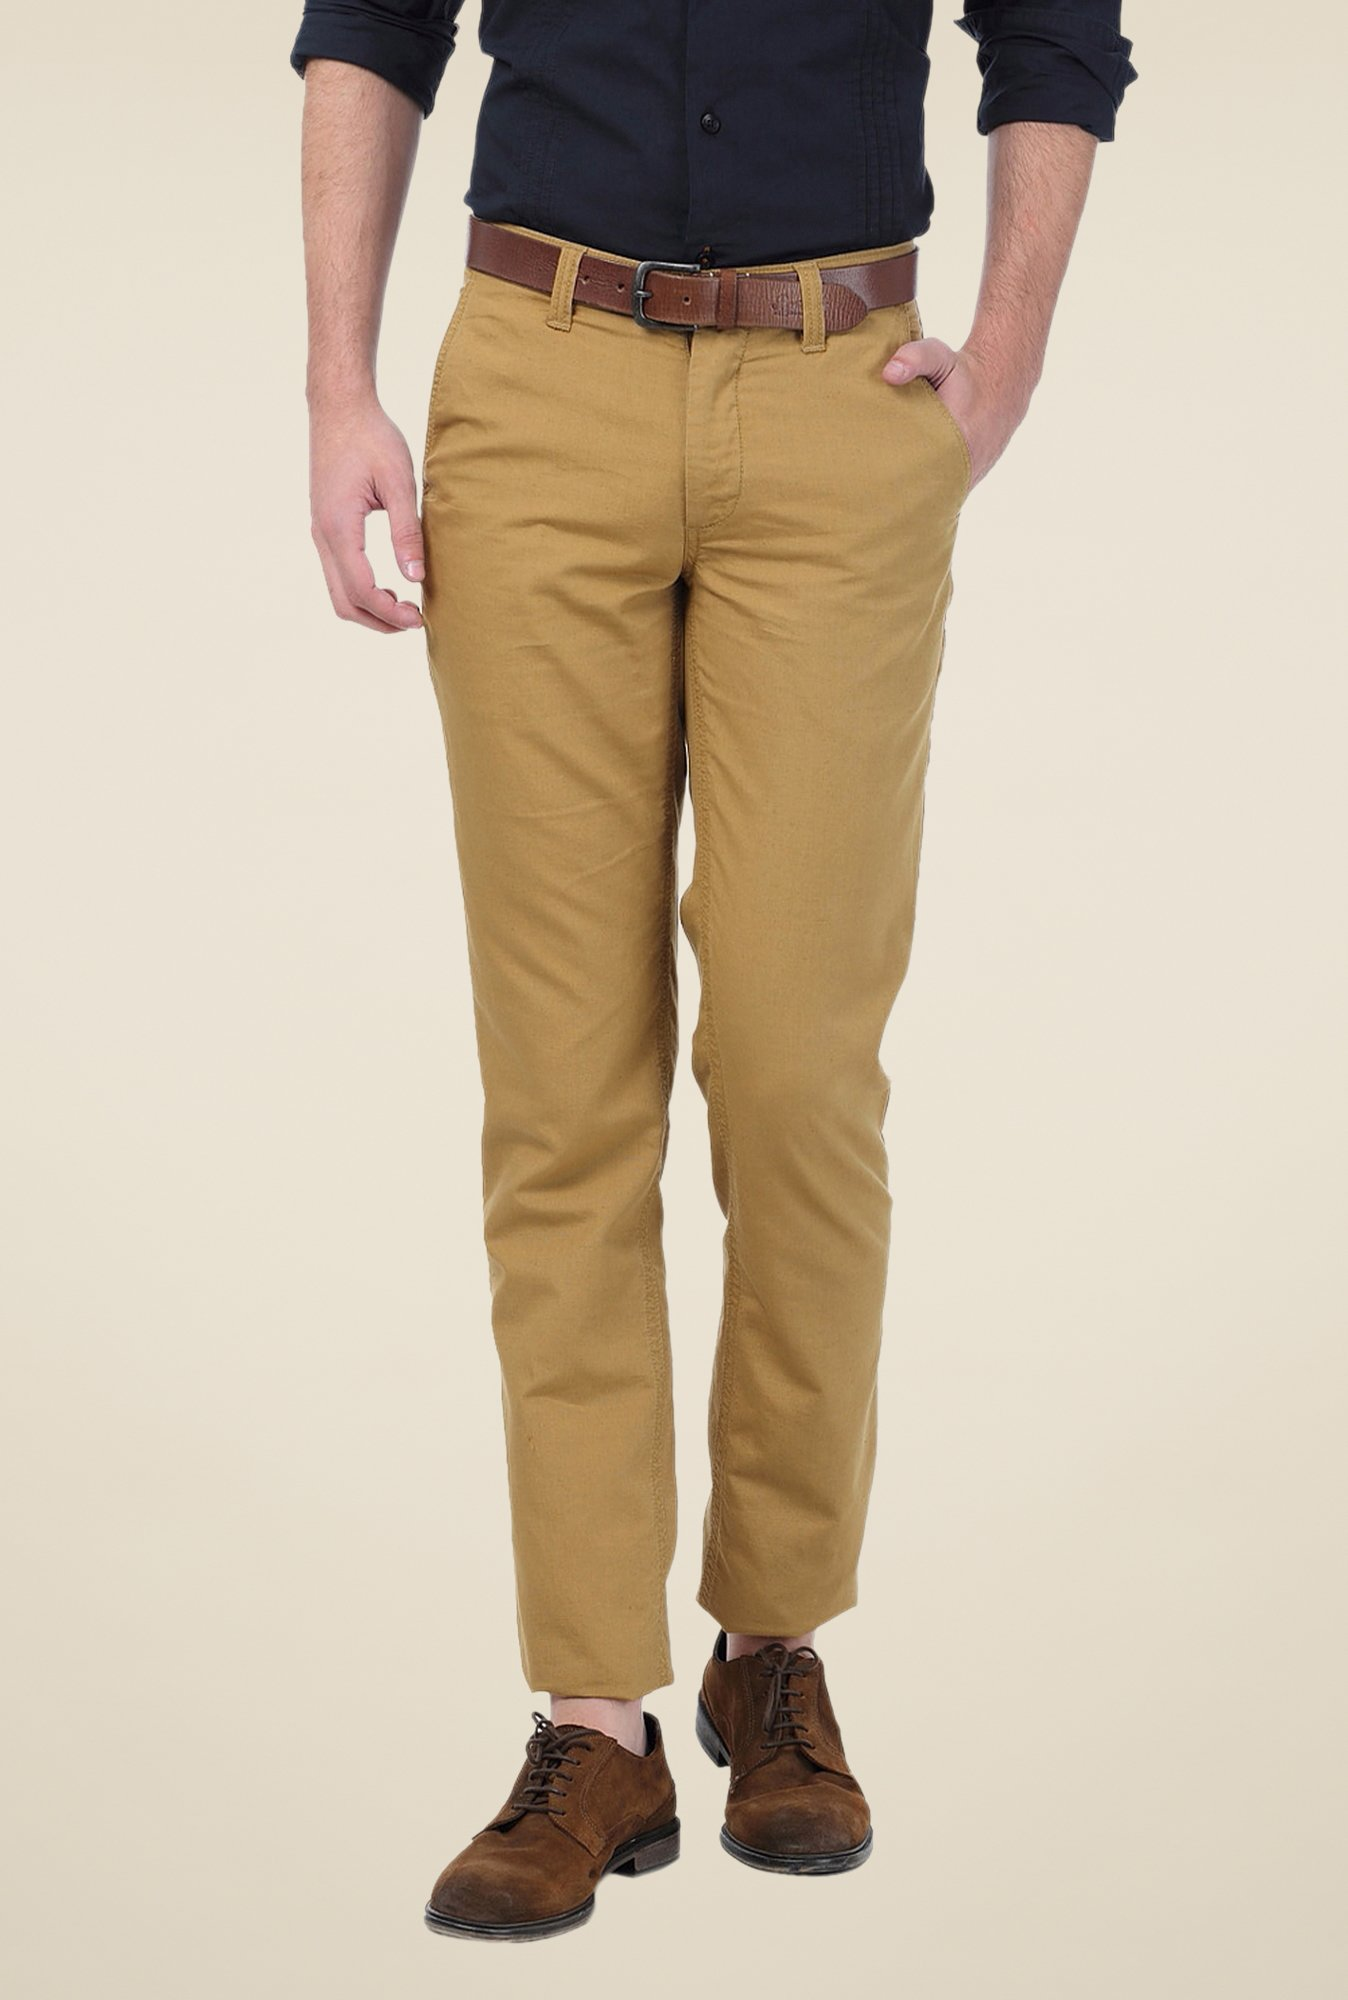 Basics Khaki Solid Slim-fit Trousers